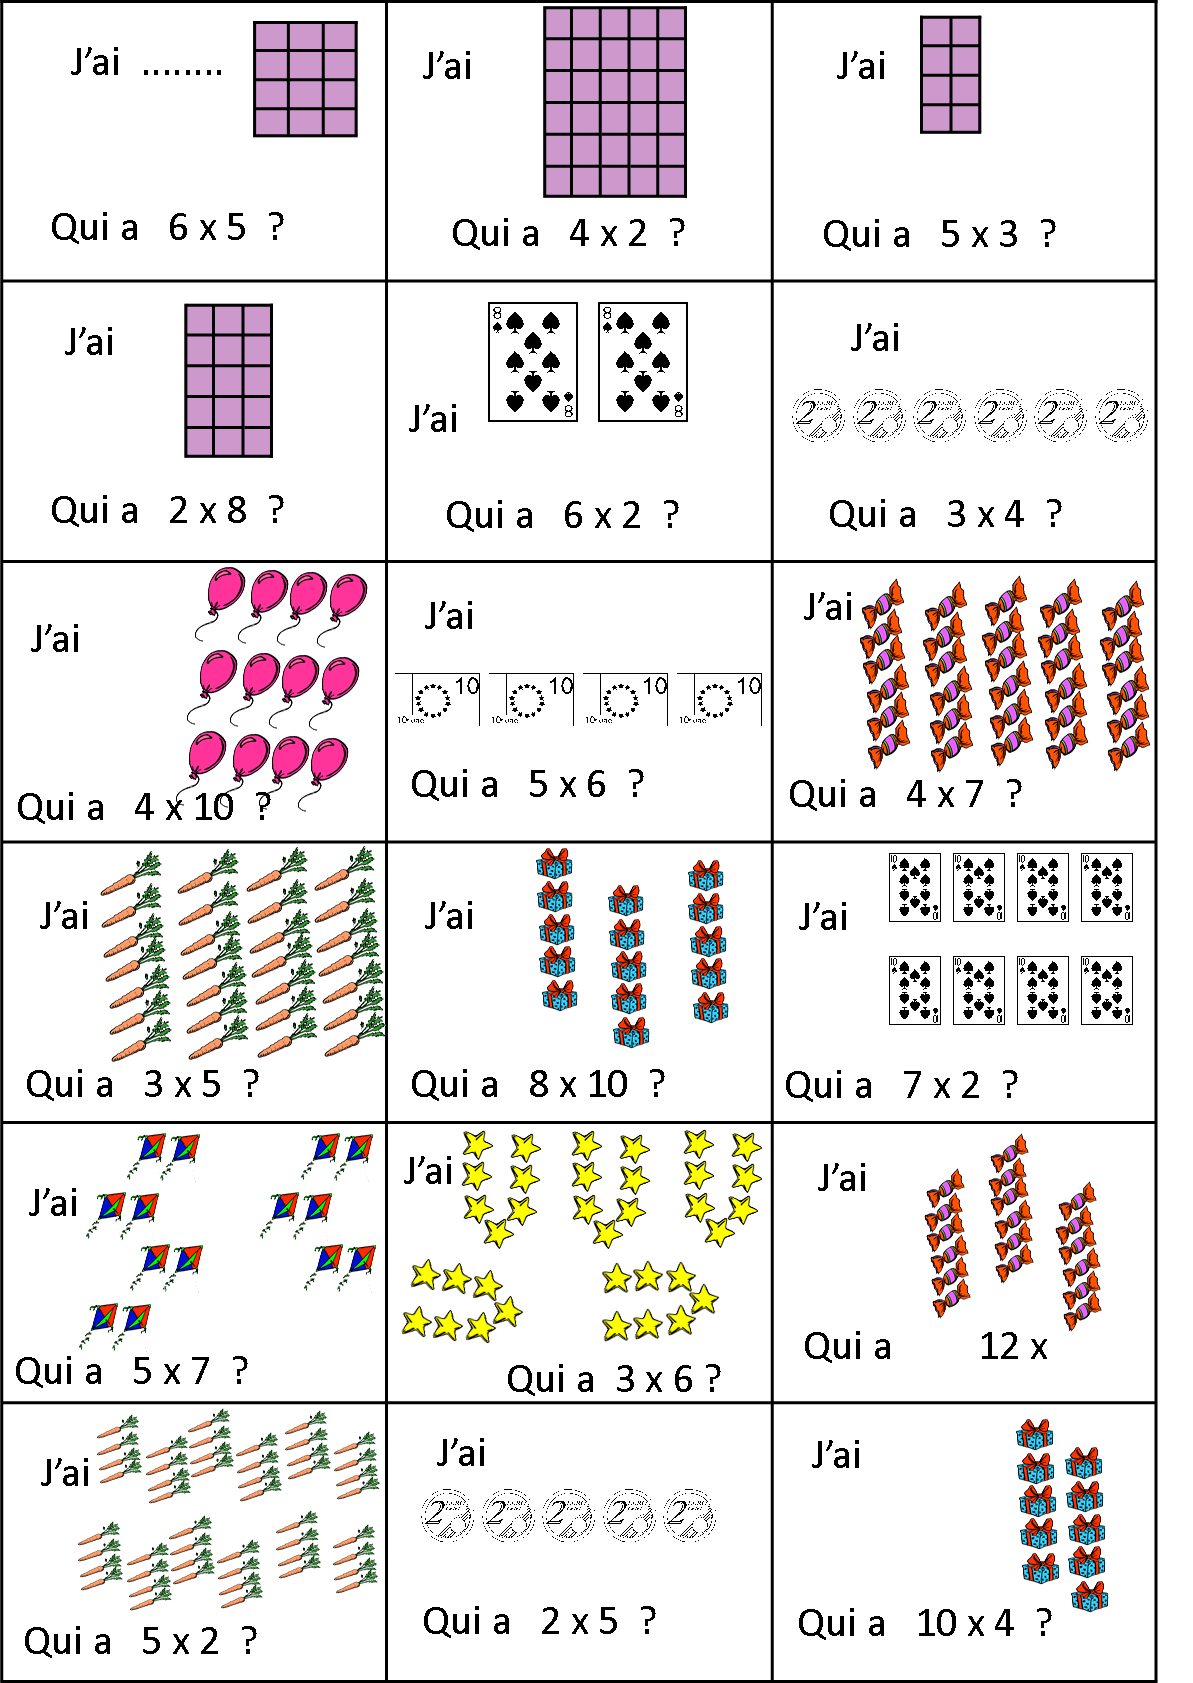 Cole de bizanet aude for Apprendre multiplication ce1